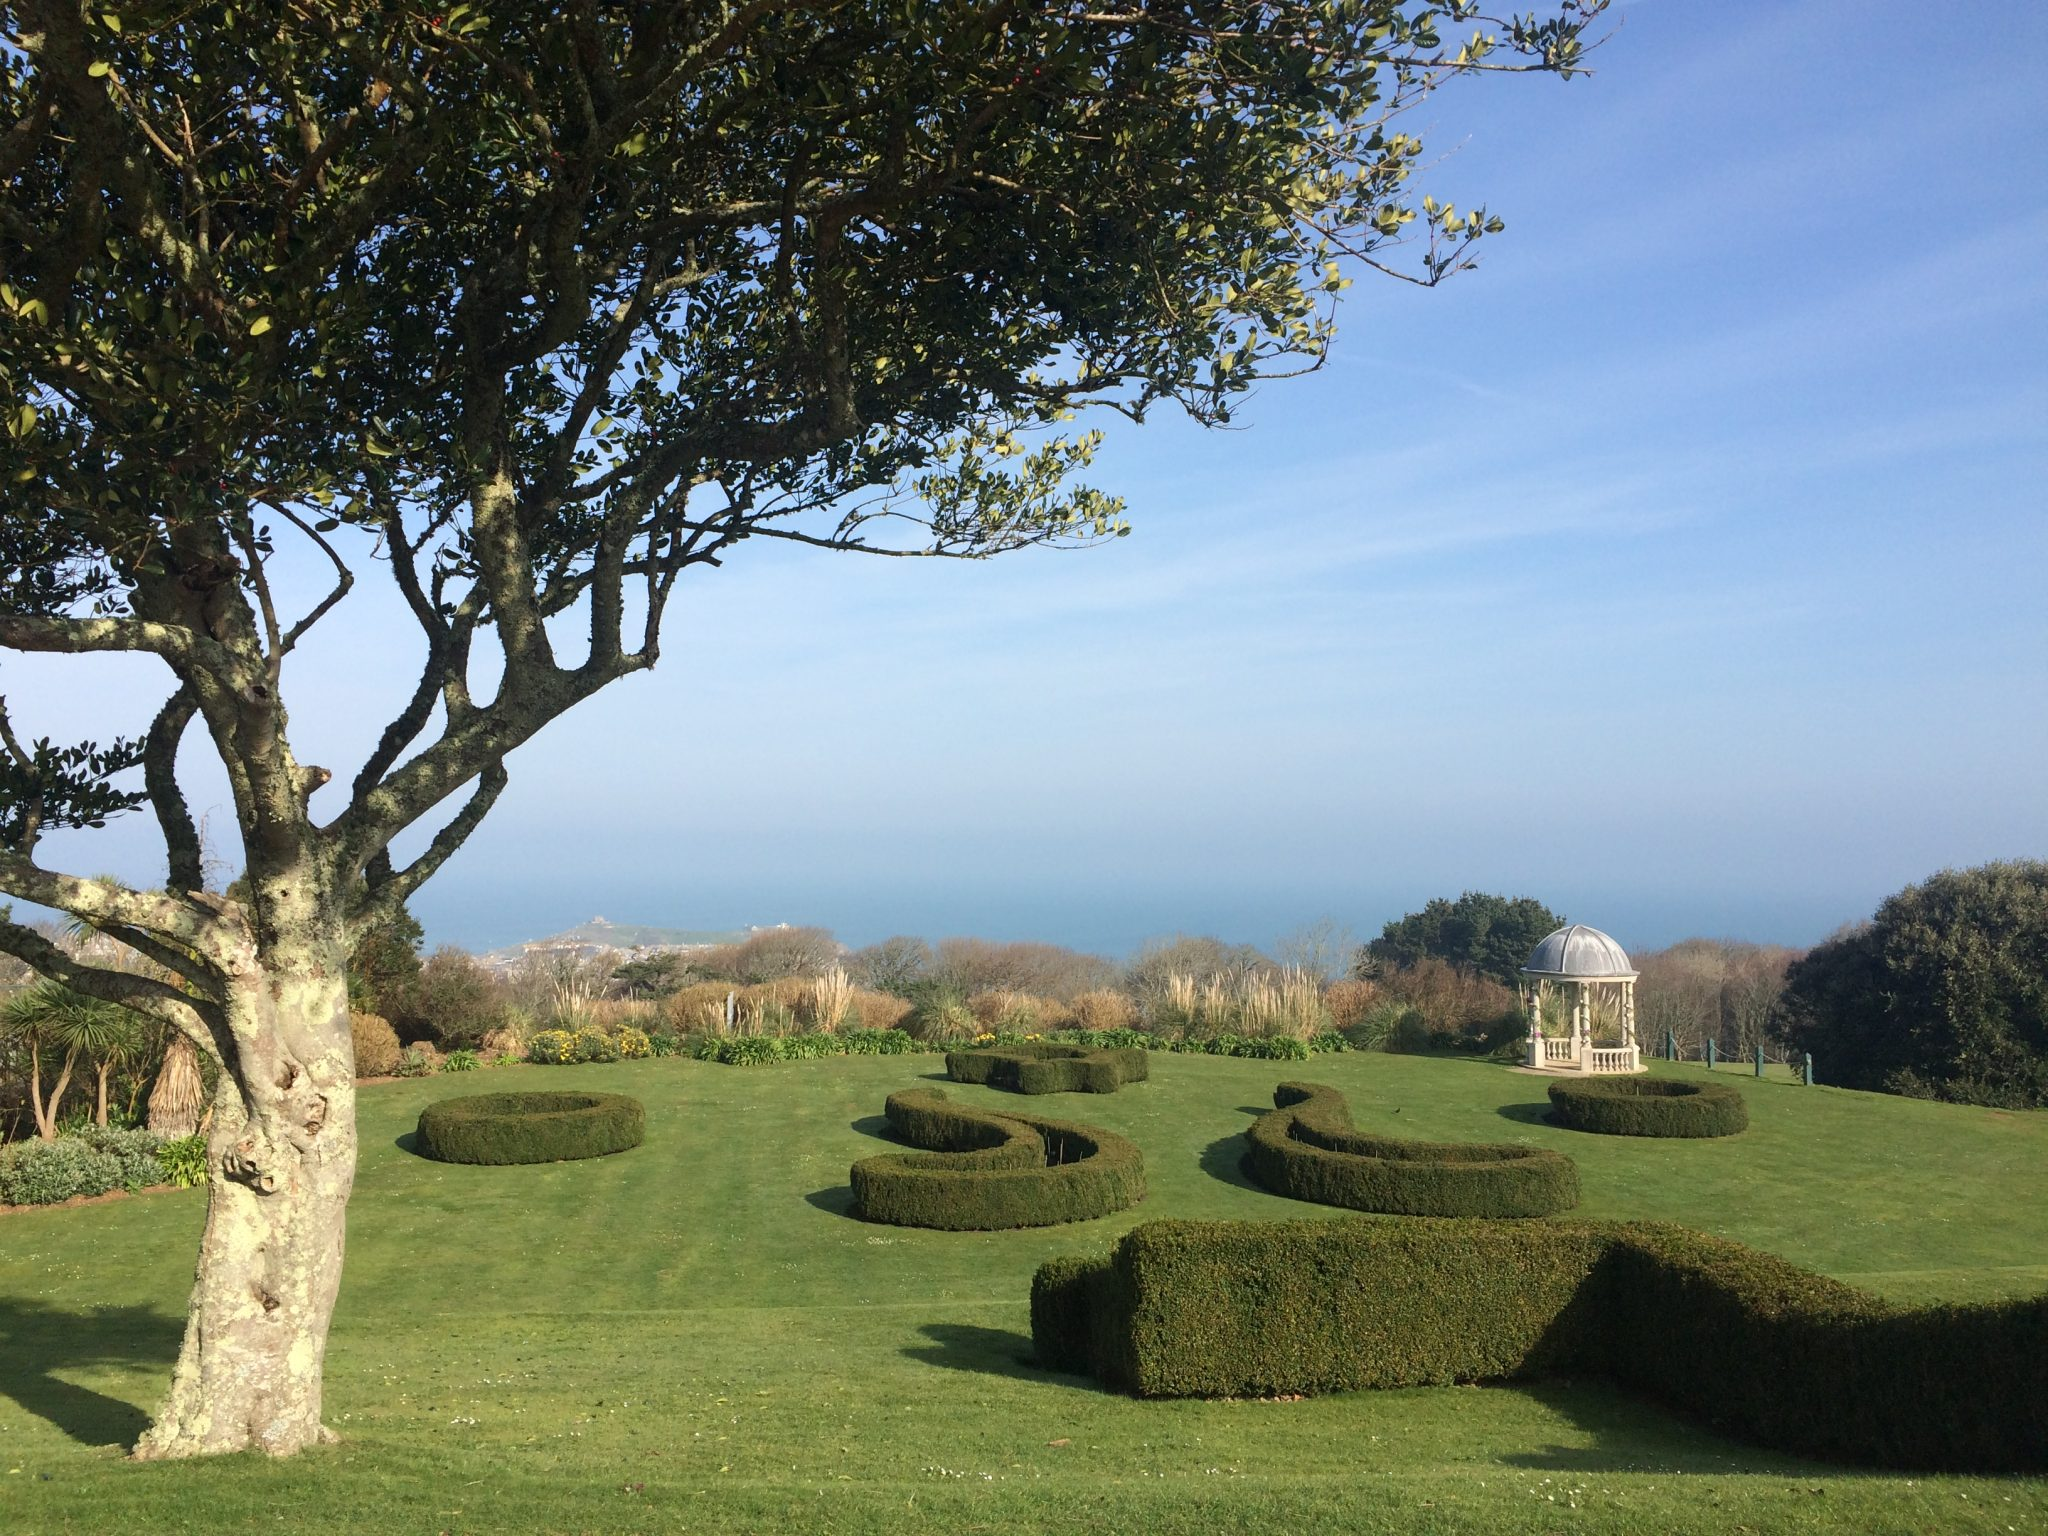 Tregnna castle gardens with a blure sky and lush green hedges and grass